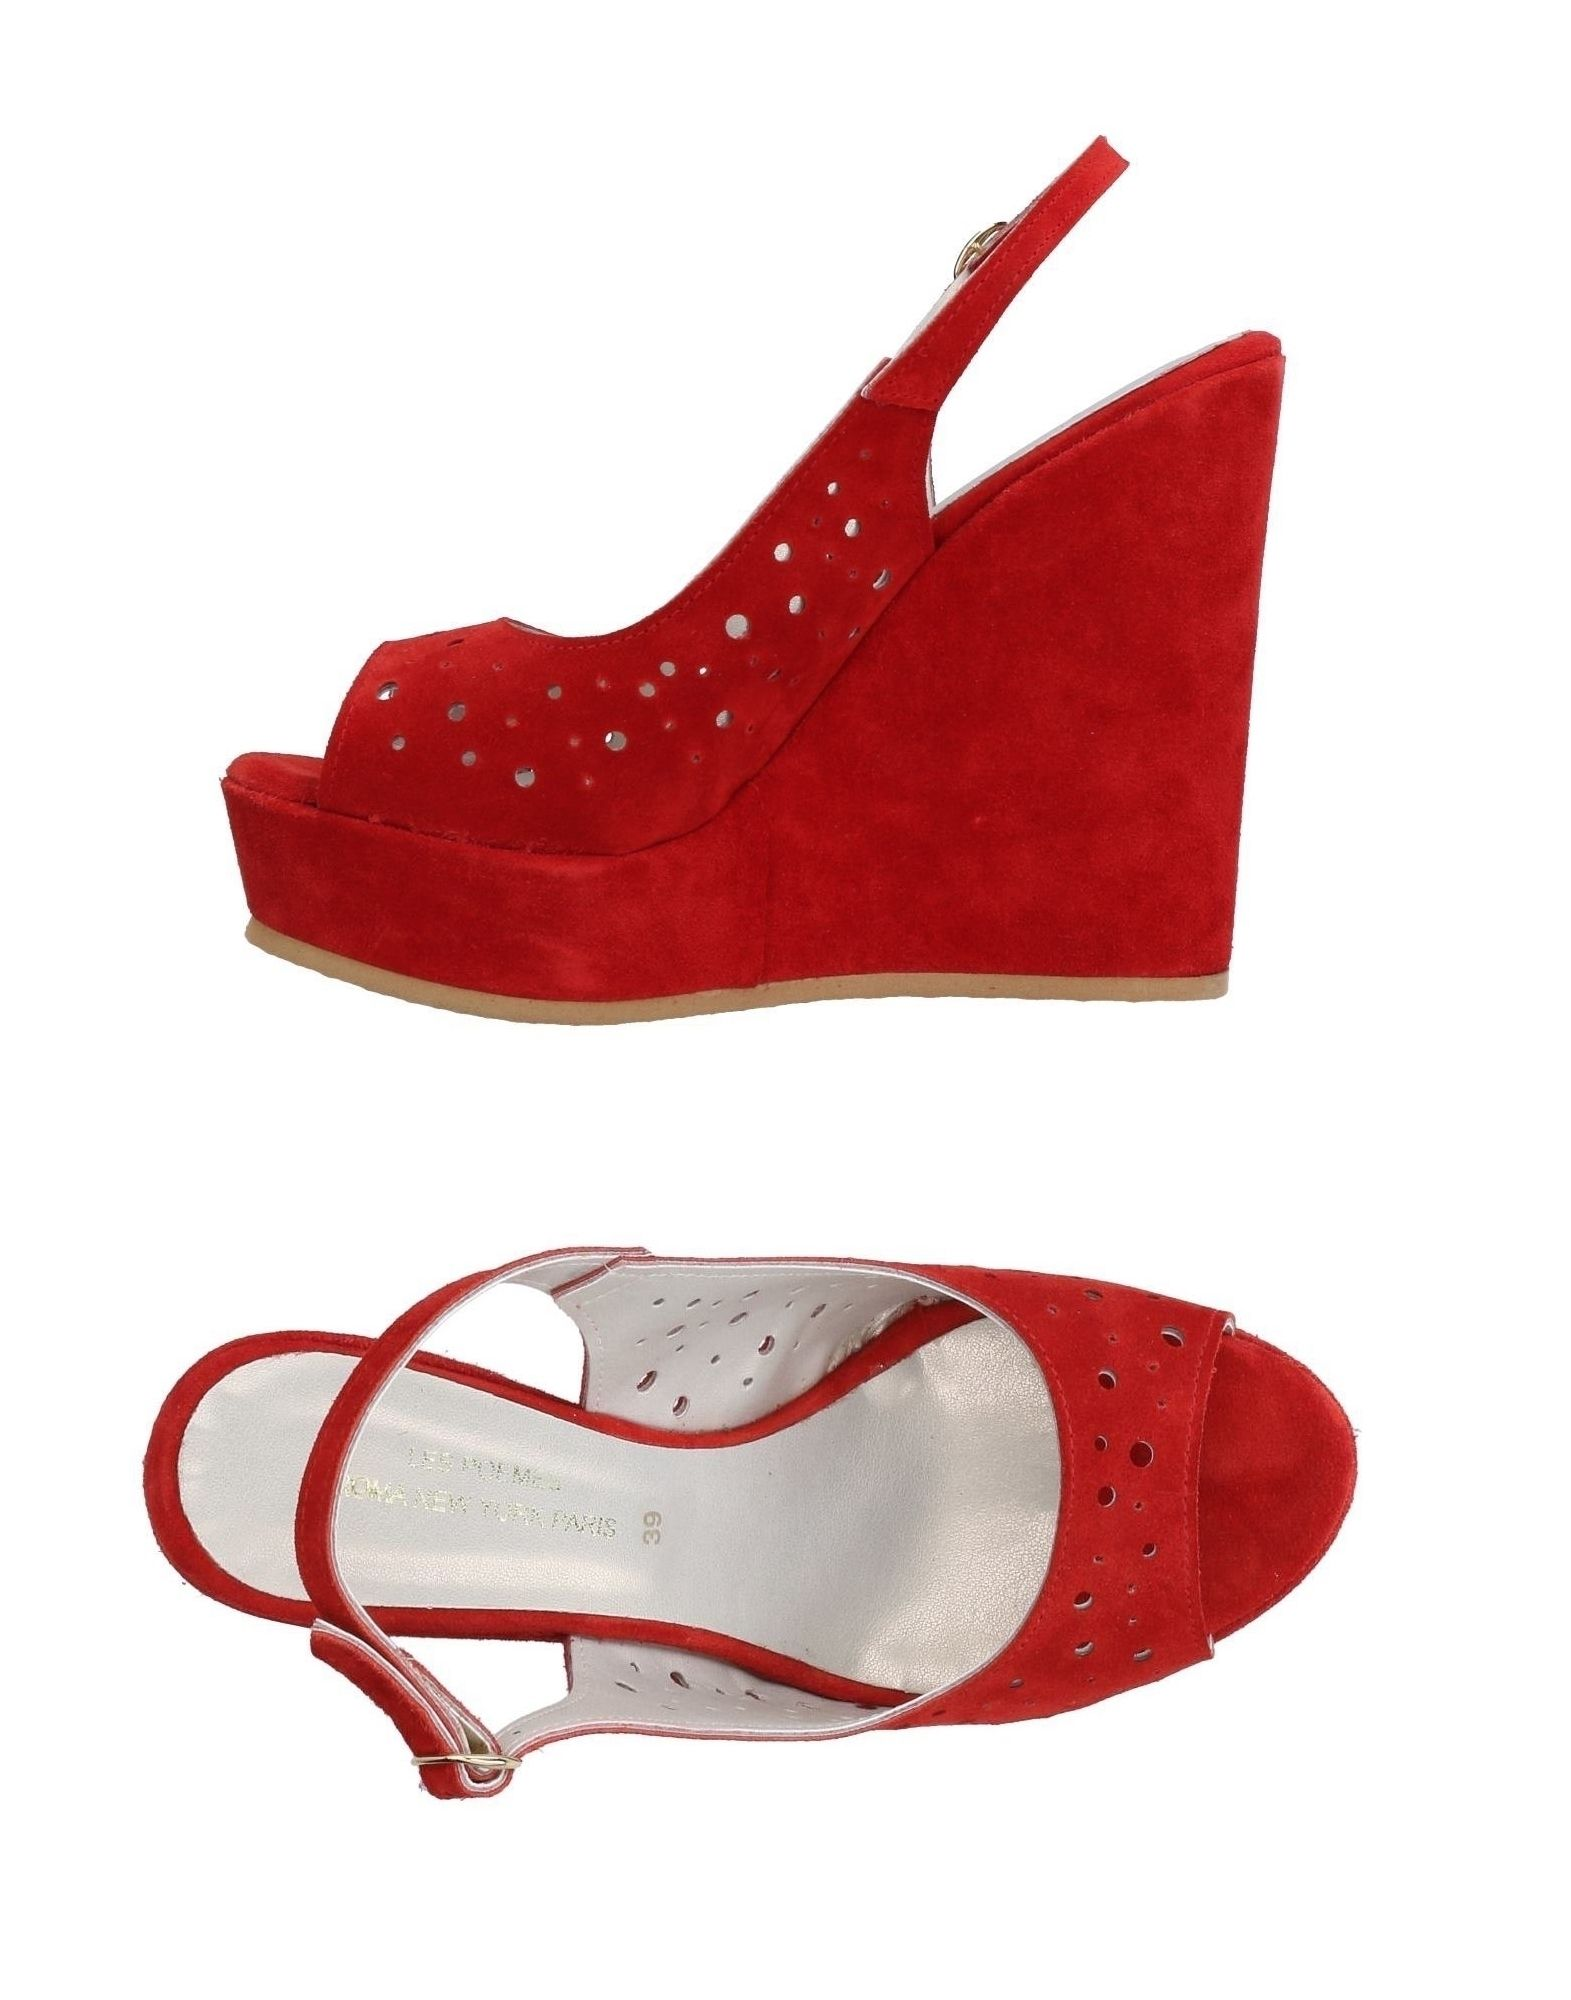 Sandali Les Poemes Donna Donna Poemes - 11503169NK f02a41